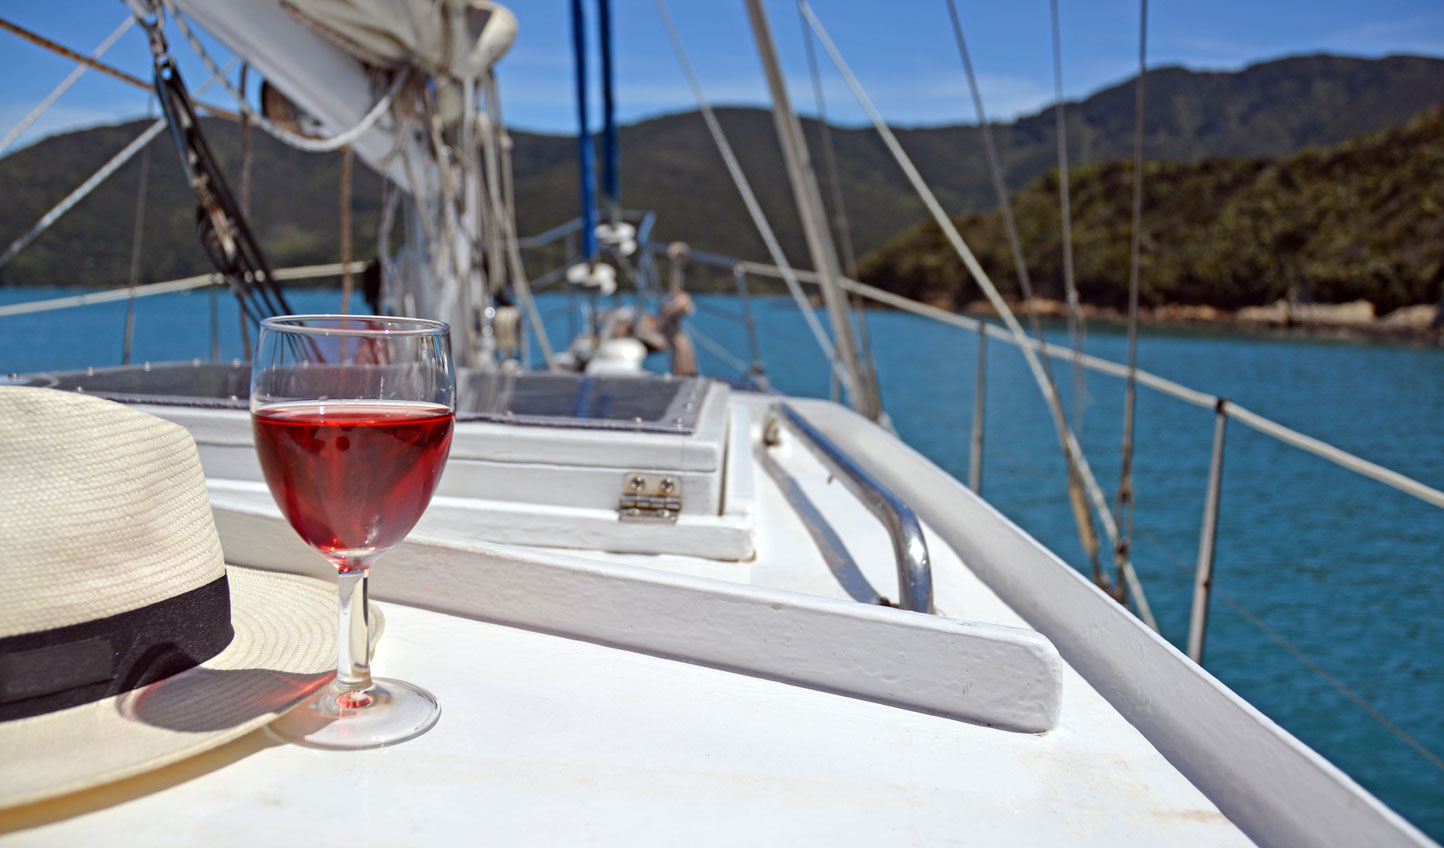 Don your boat shoes and prepare for an exclusive day on the water